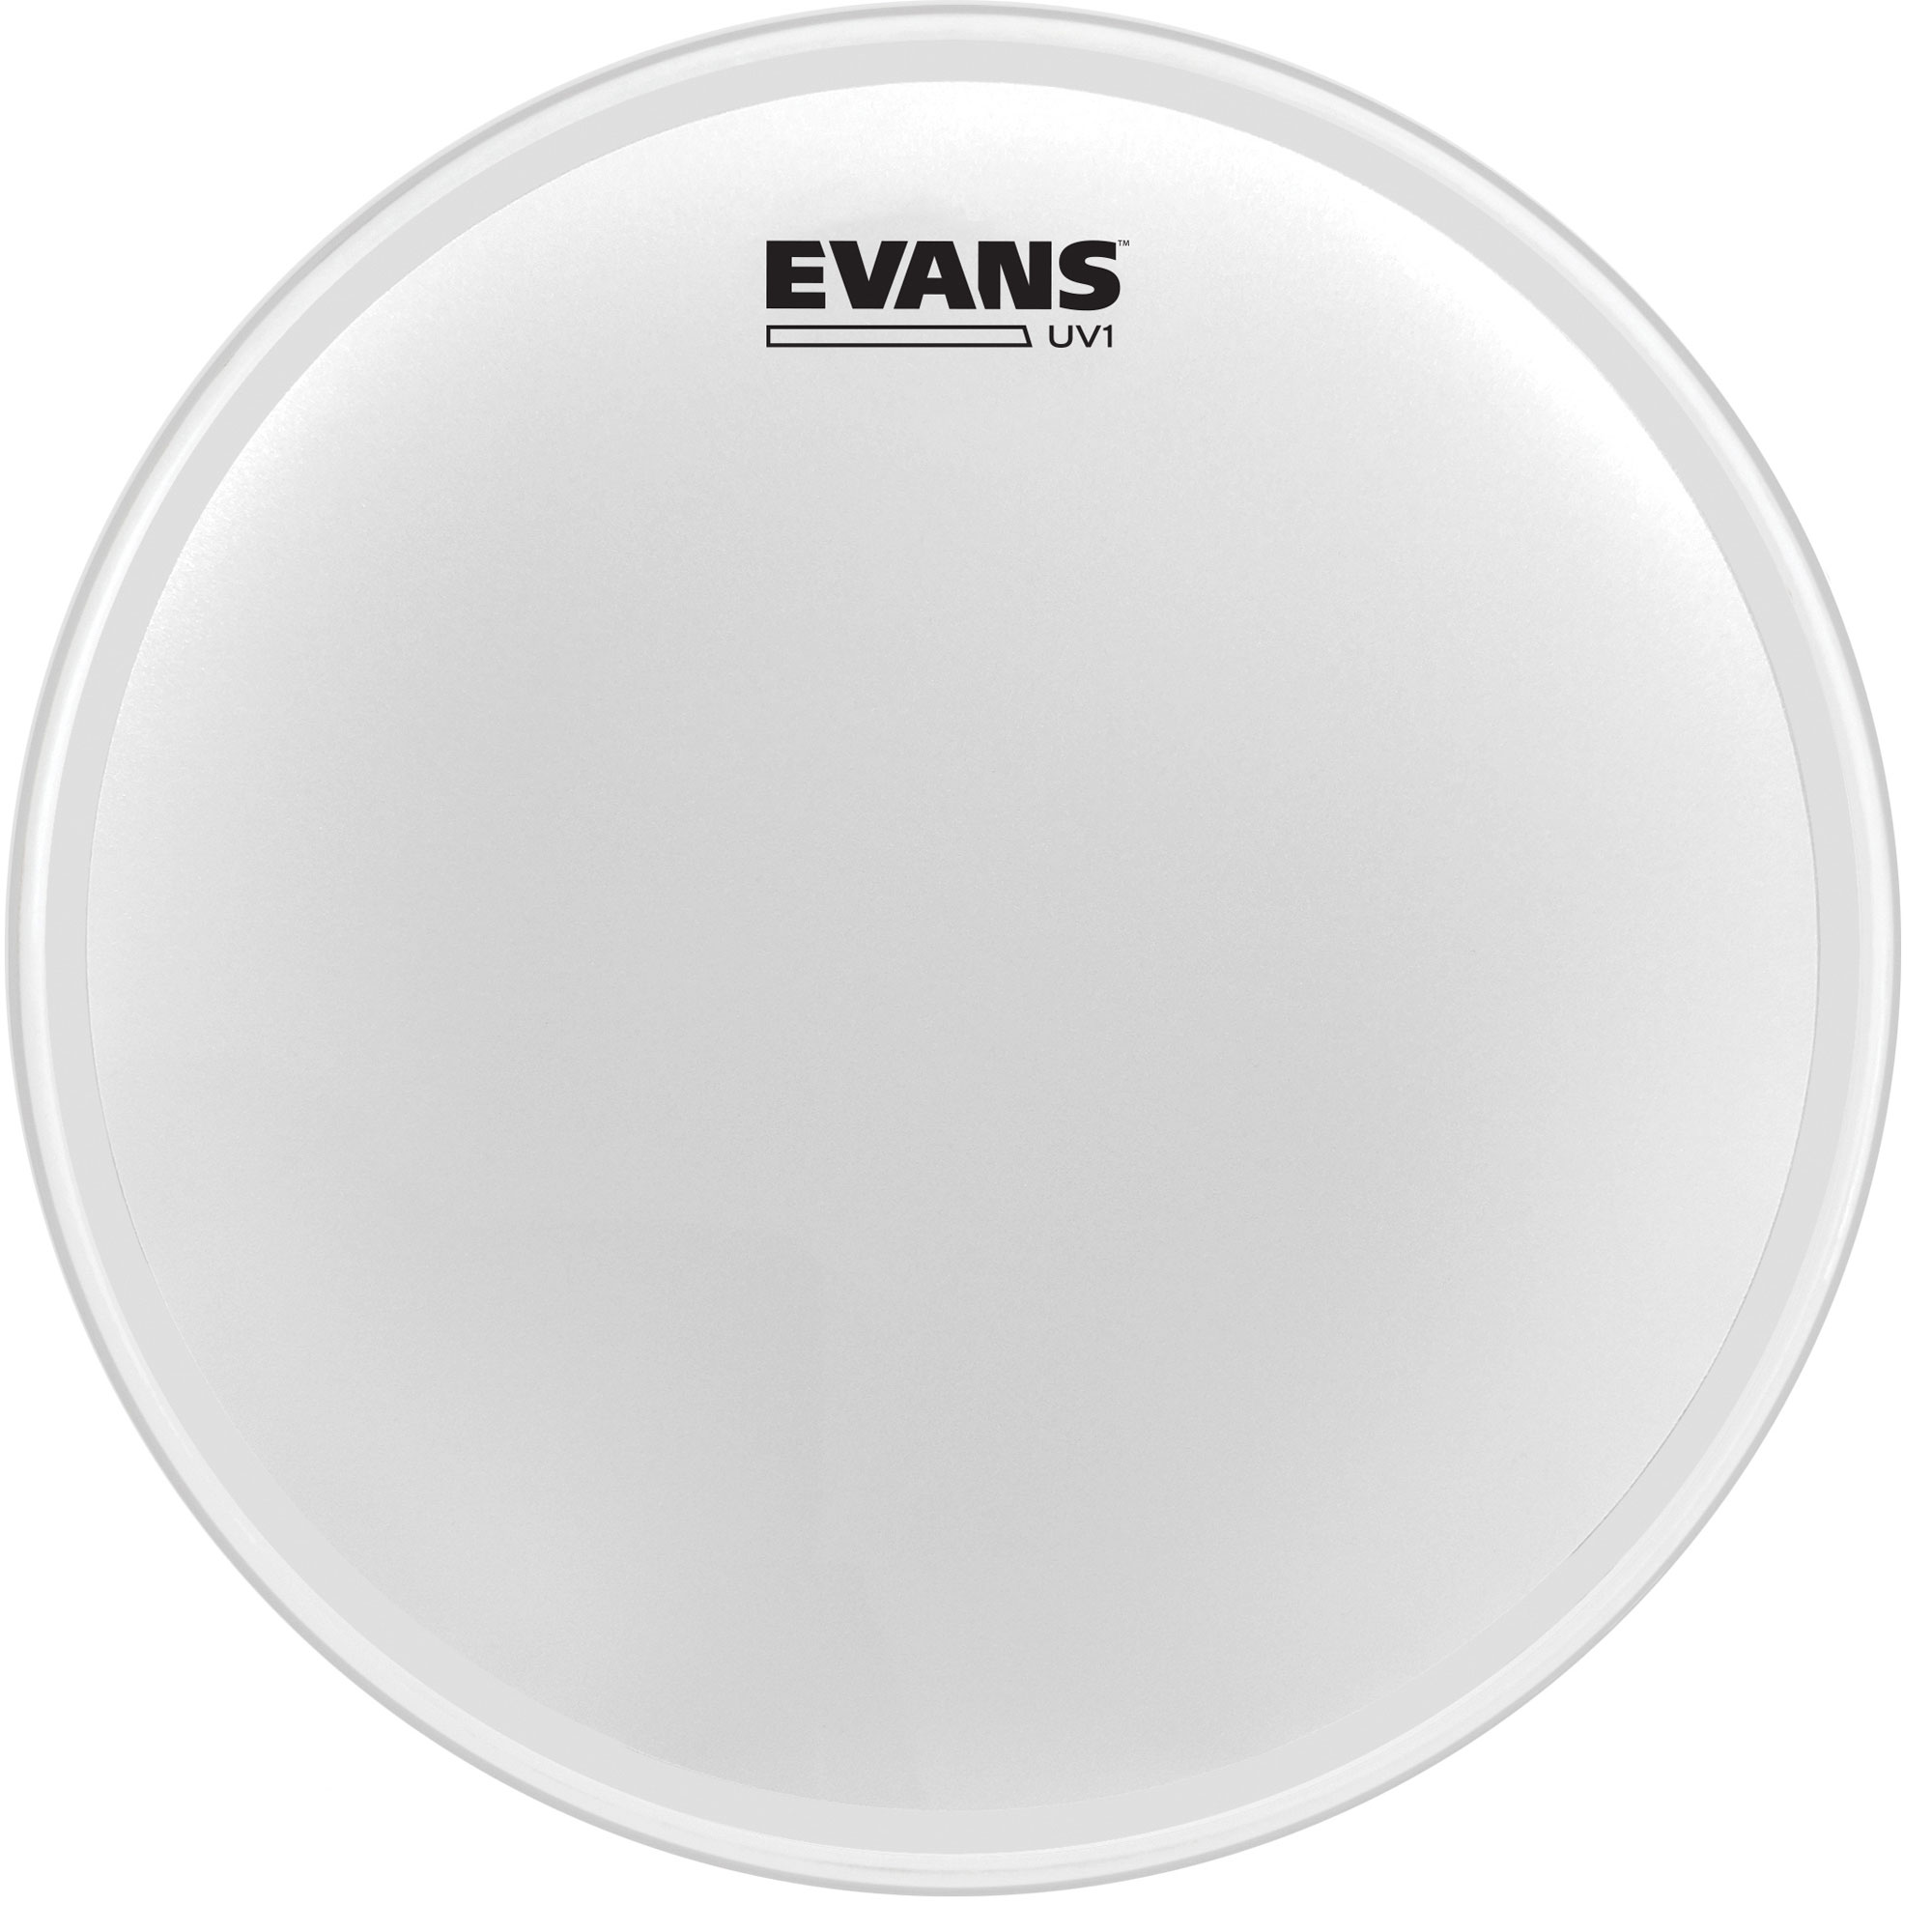 "Evans 10"" UV1 Coated Drum Head"